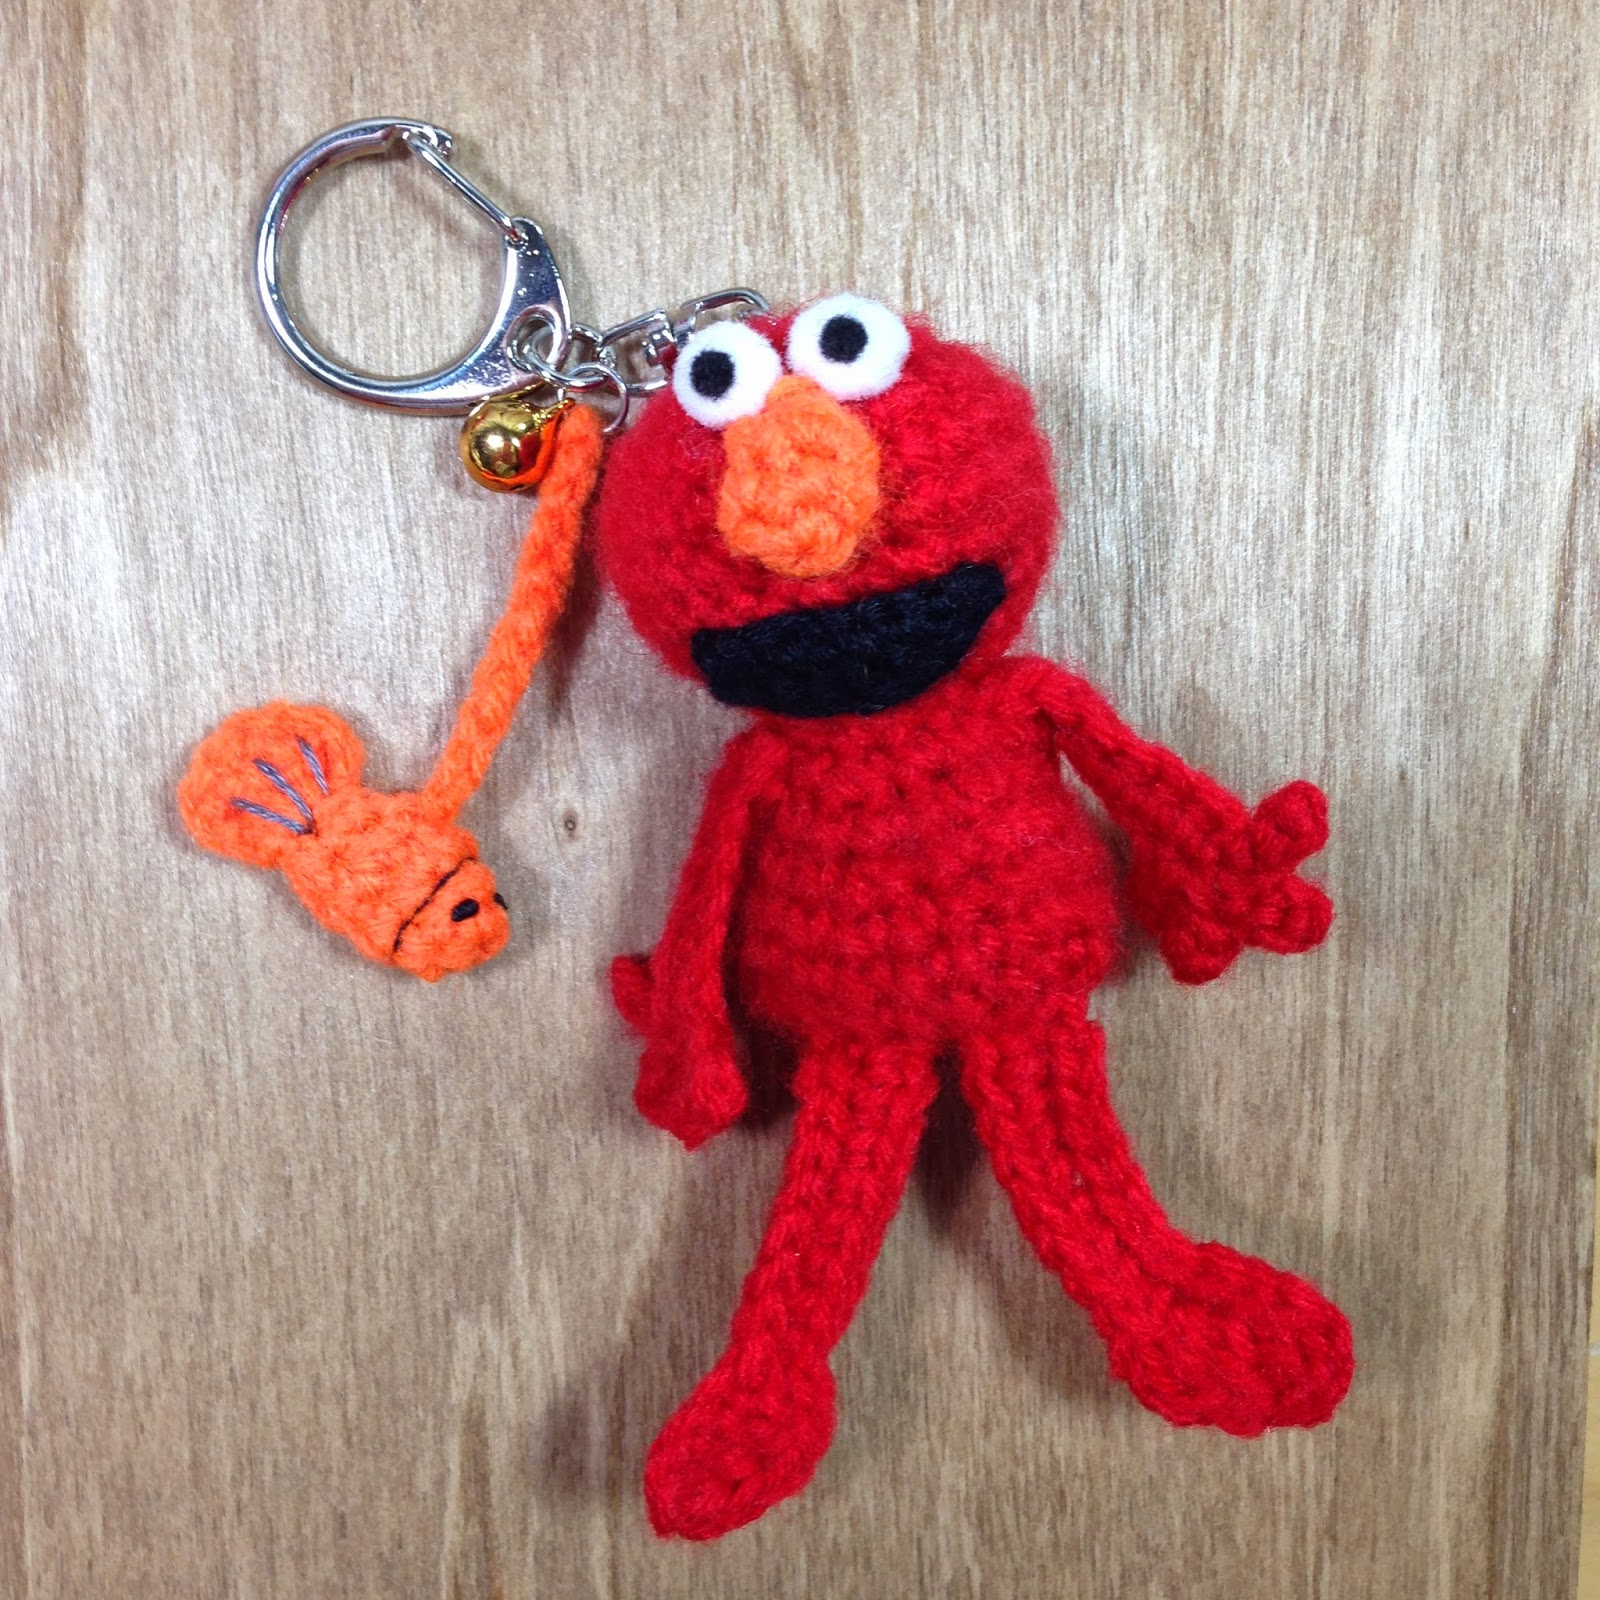 stuff susie made: Mini Crochet Elmo - free crochet / amigurumi pattern